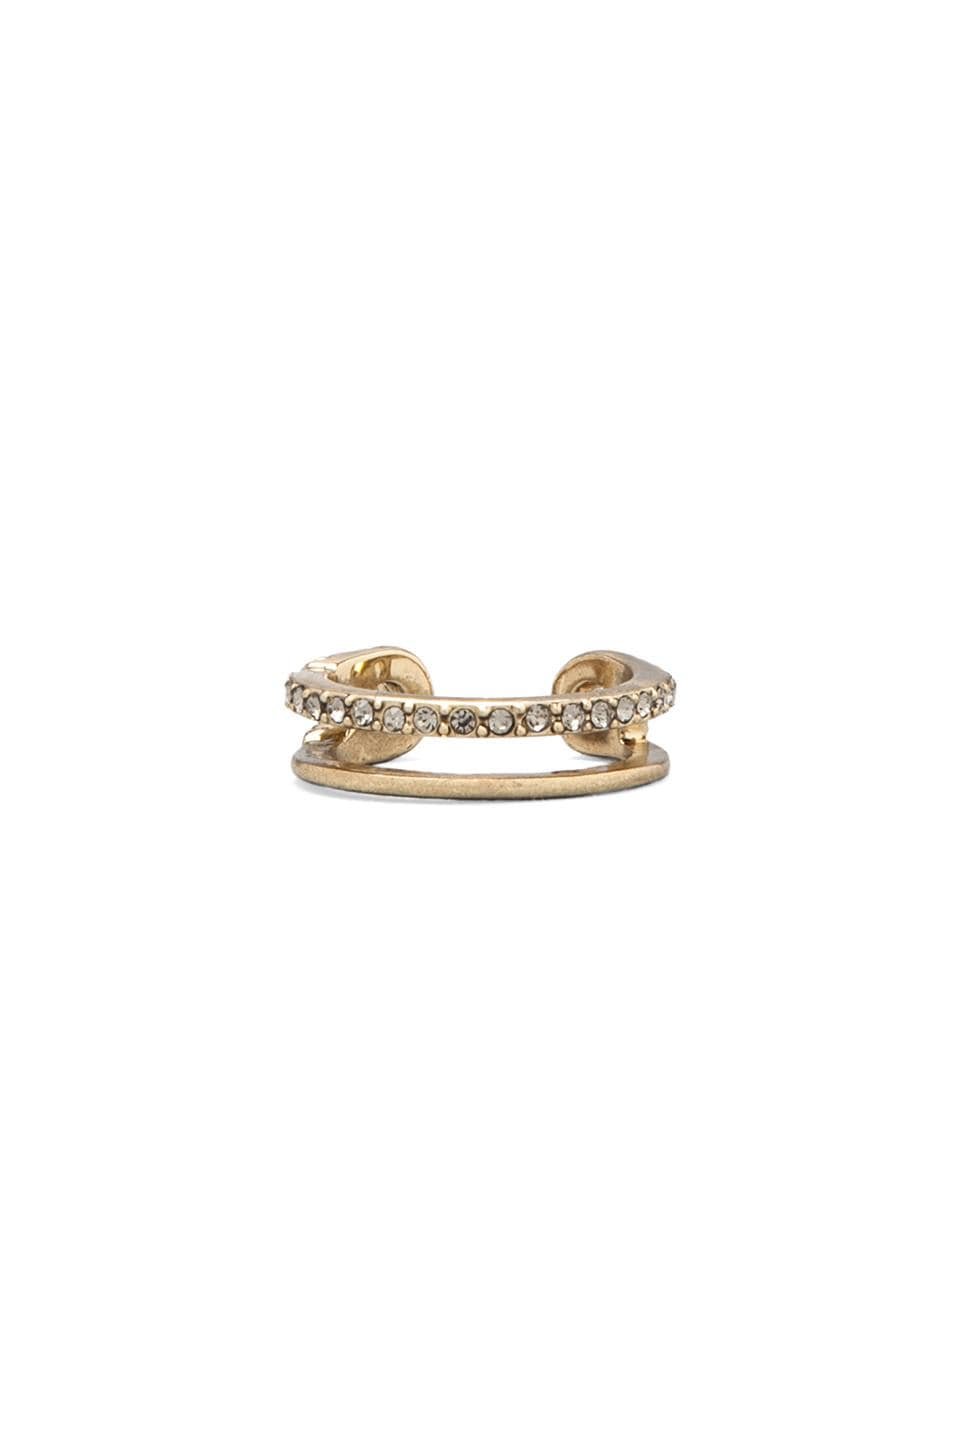 House of Harlow 1960 House of Harlow Pave Safety Pin Wrap Ring in Gold